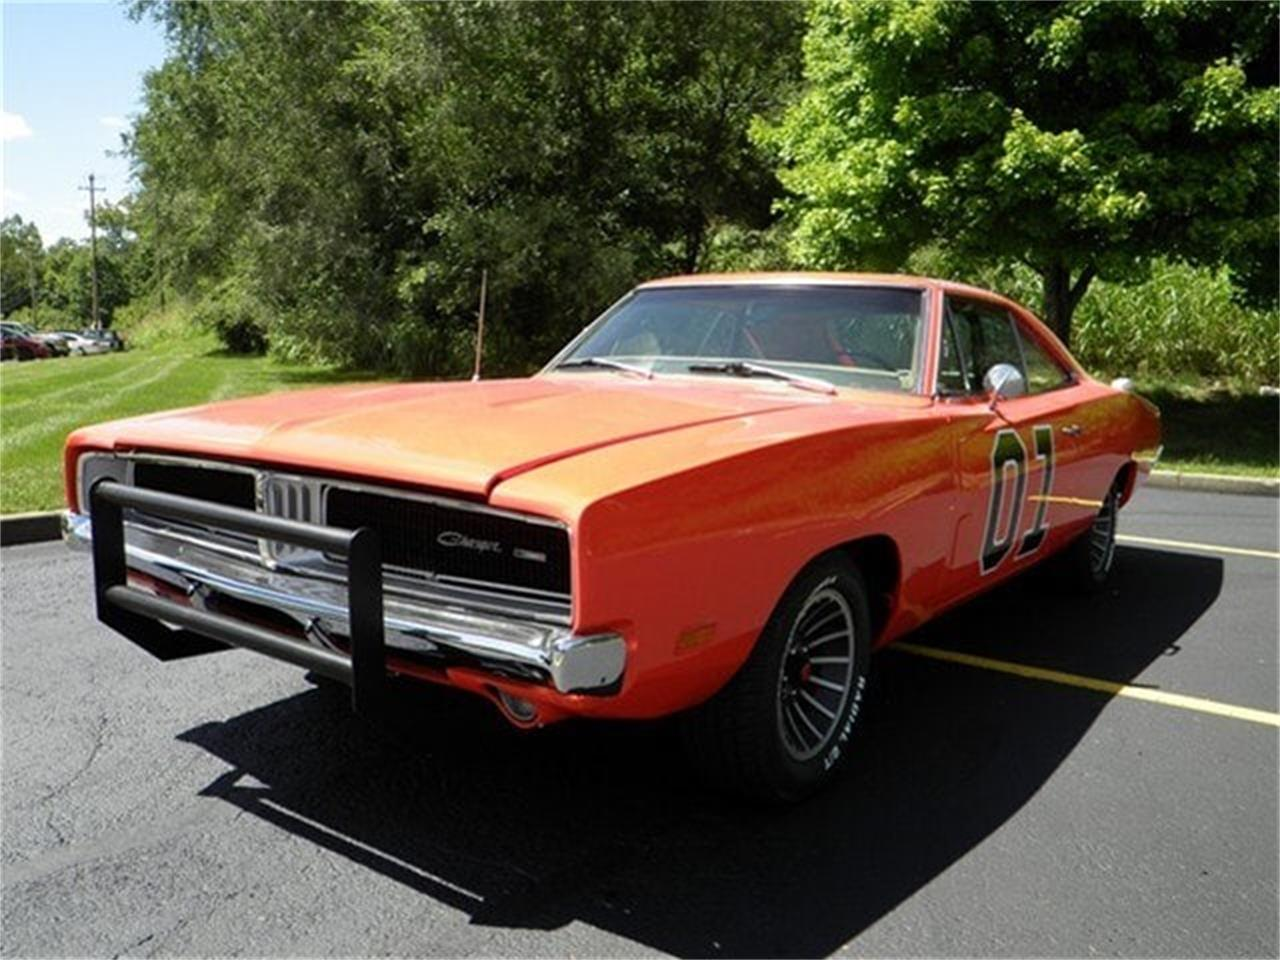 for sale 1969 dodge charger in milford, ohio cars - milford, oh at geebo